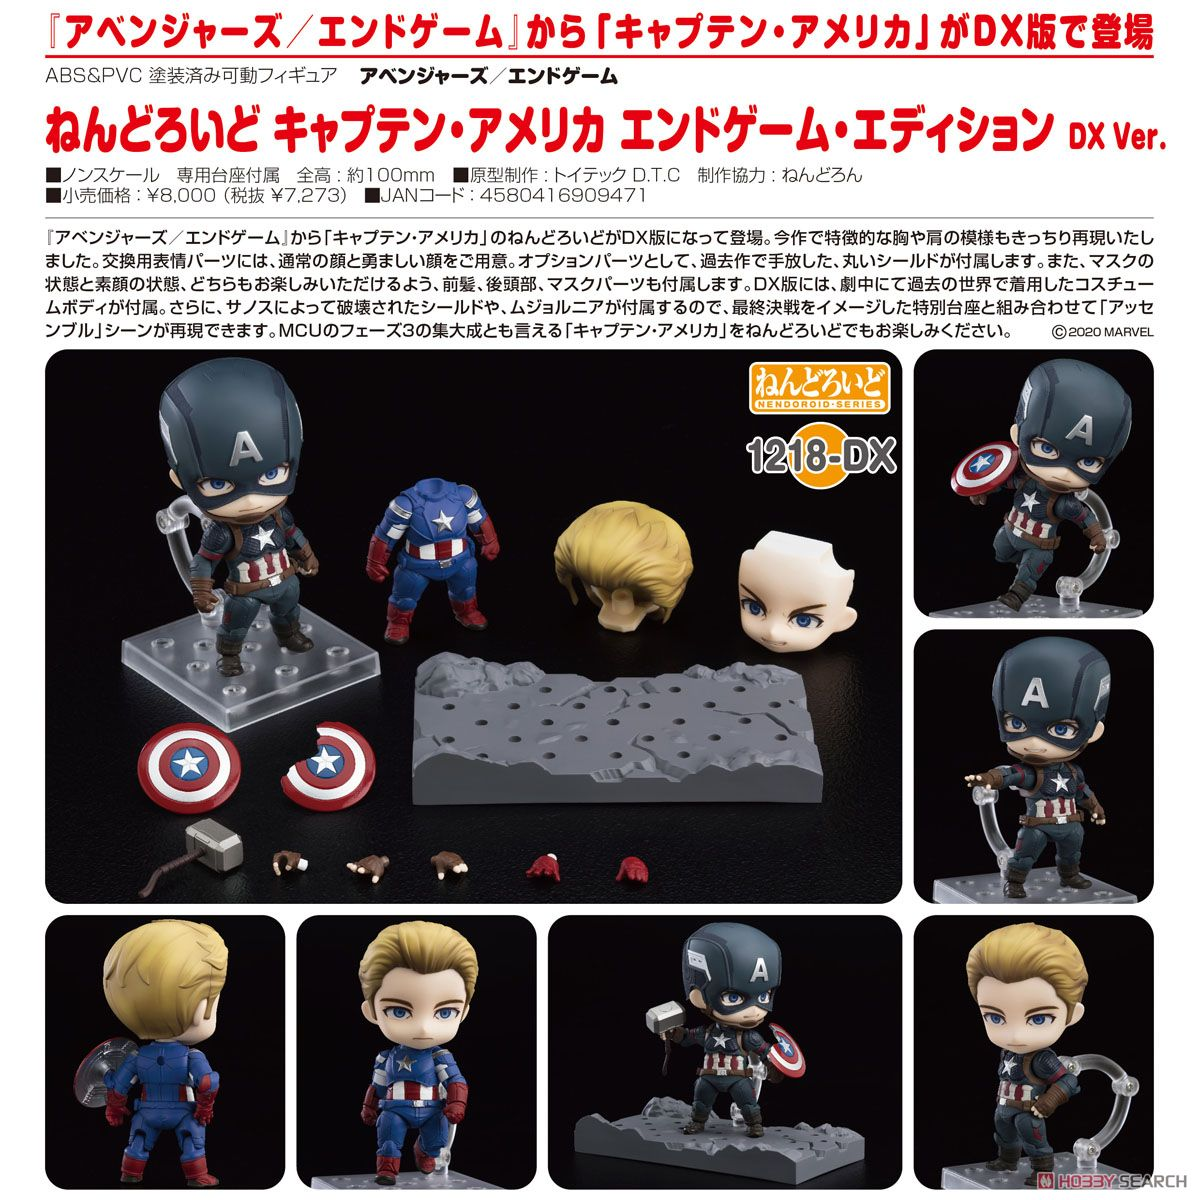 【已截訂】Good Smile Company Nendoroid No.1218DX Captain America Endgame Edition DX Ver.